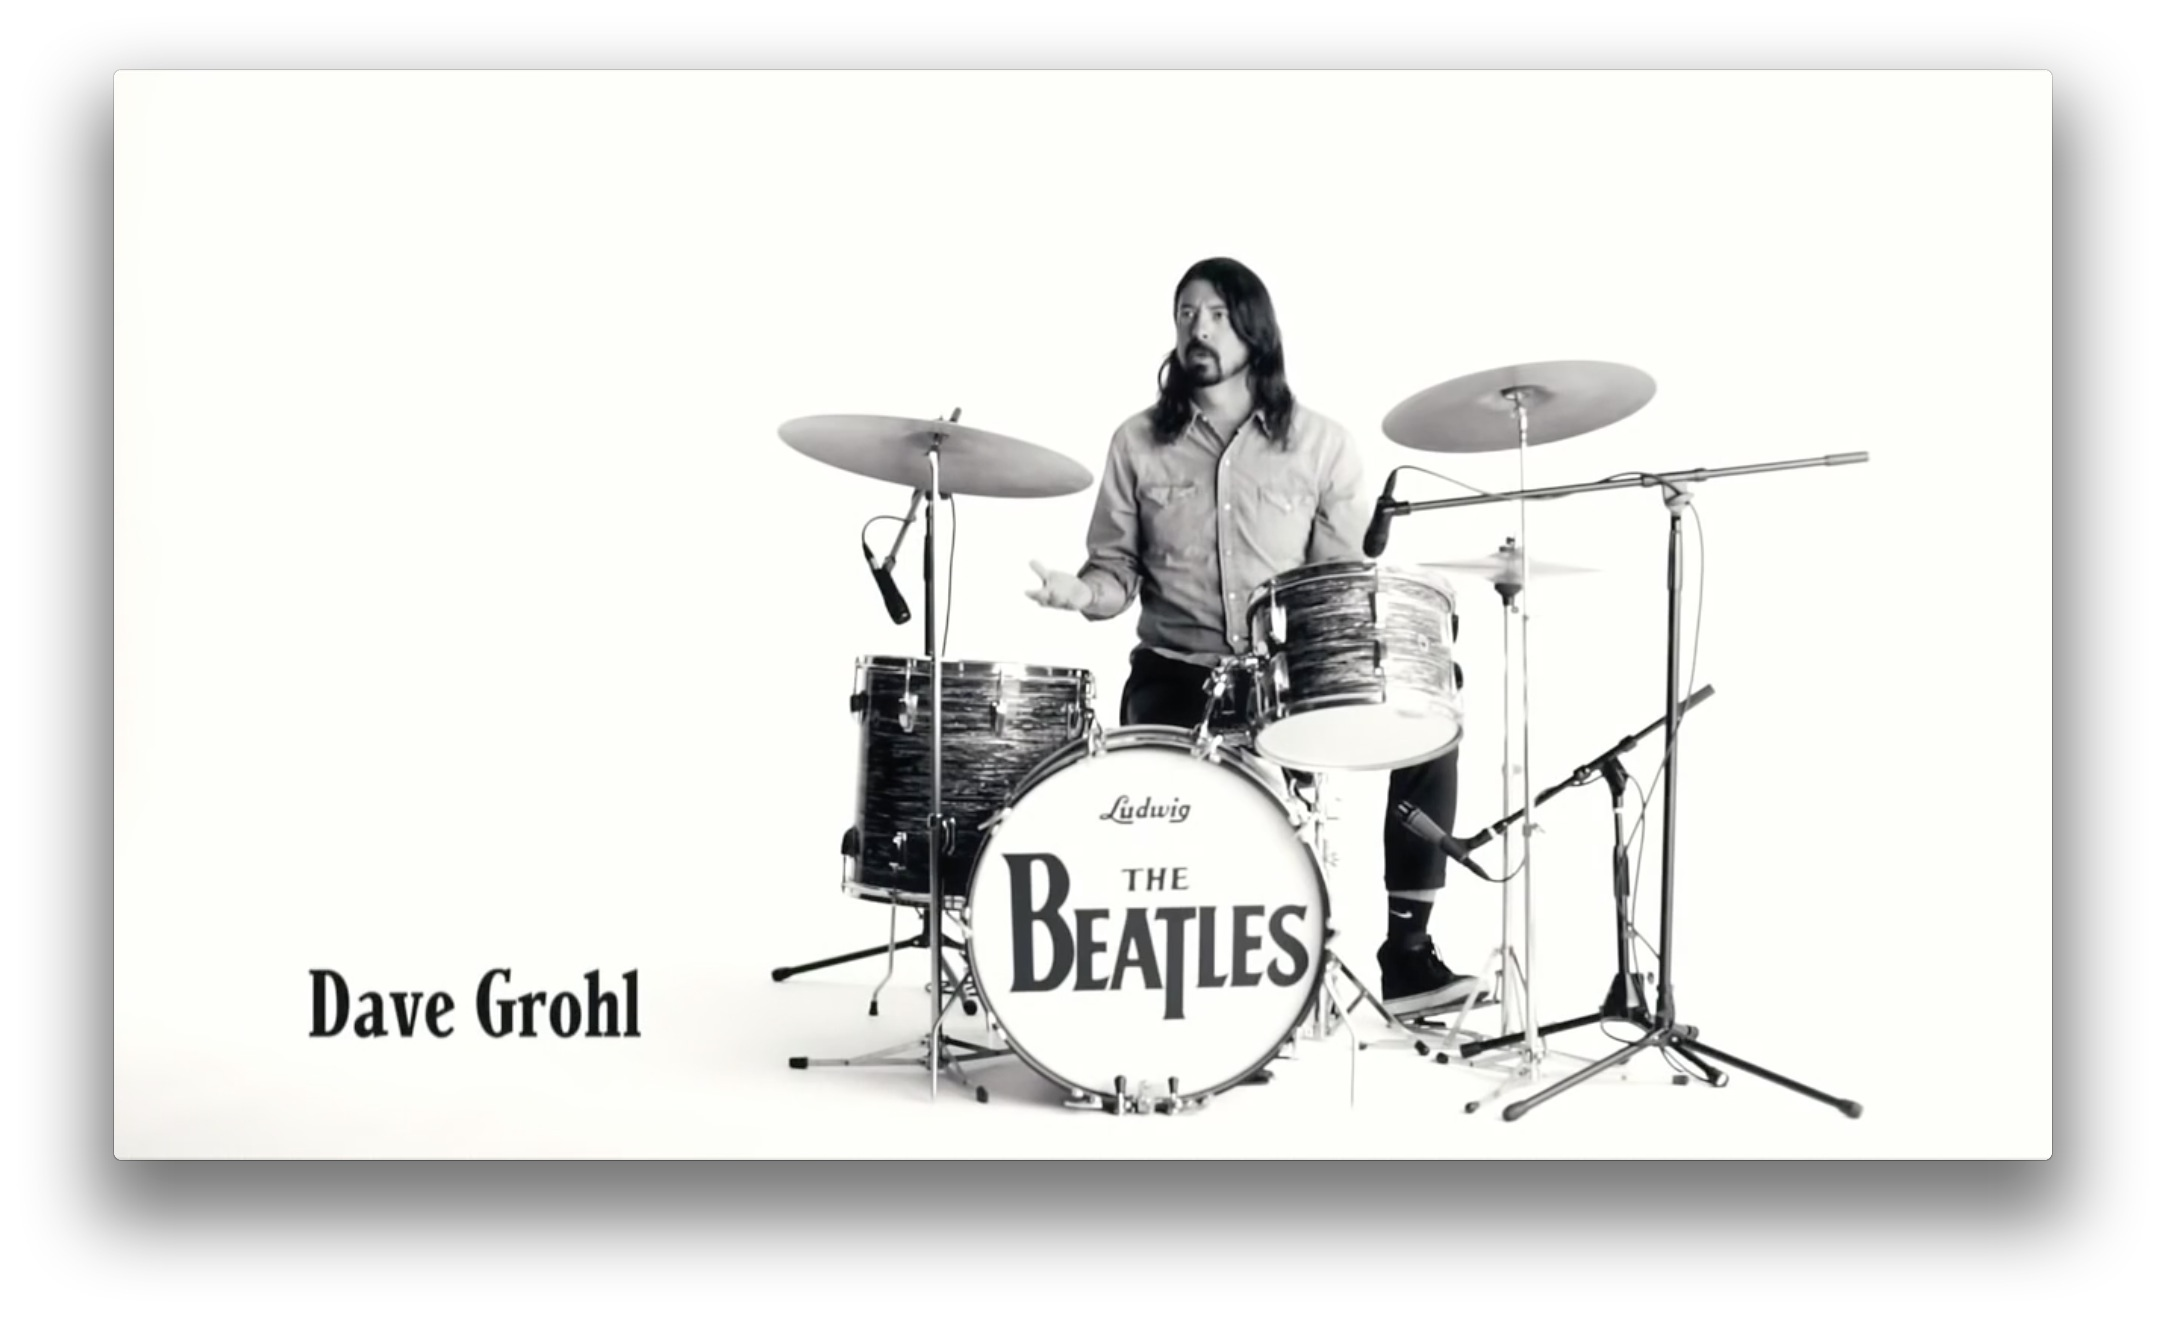 Ringo_Dave Grohl